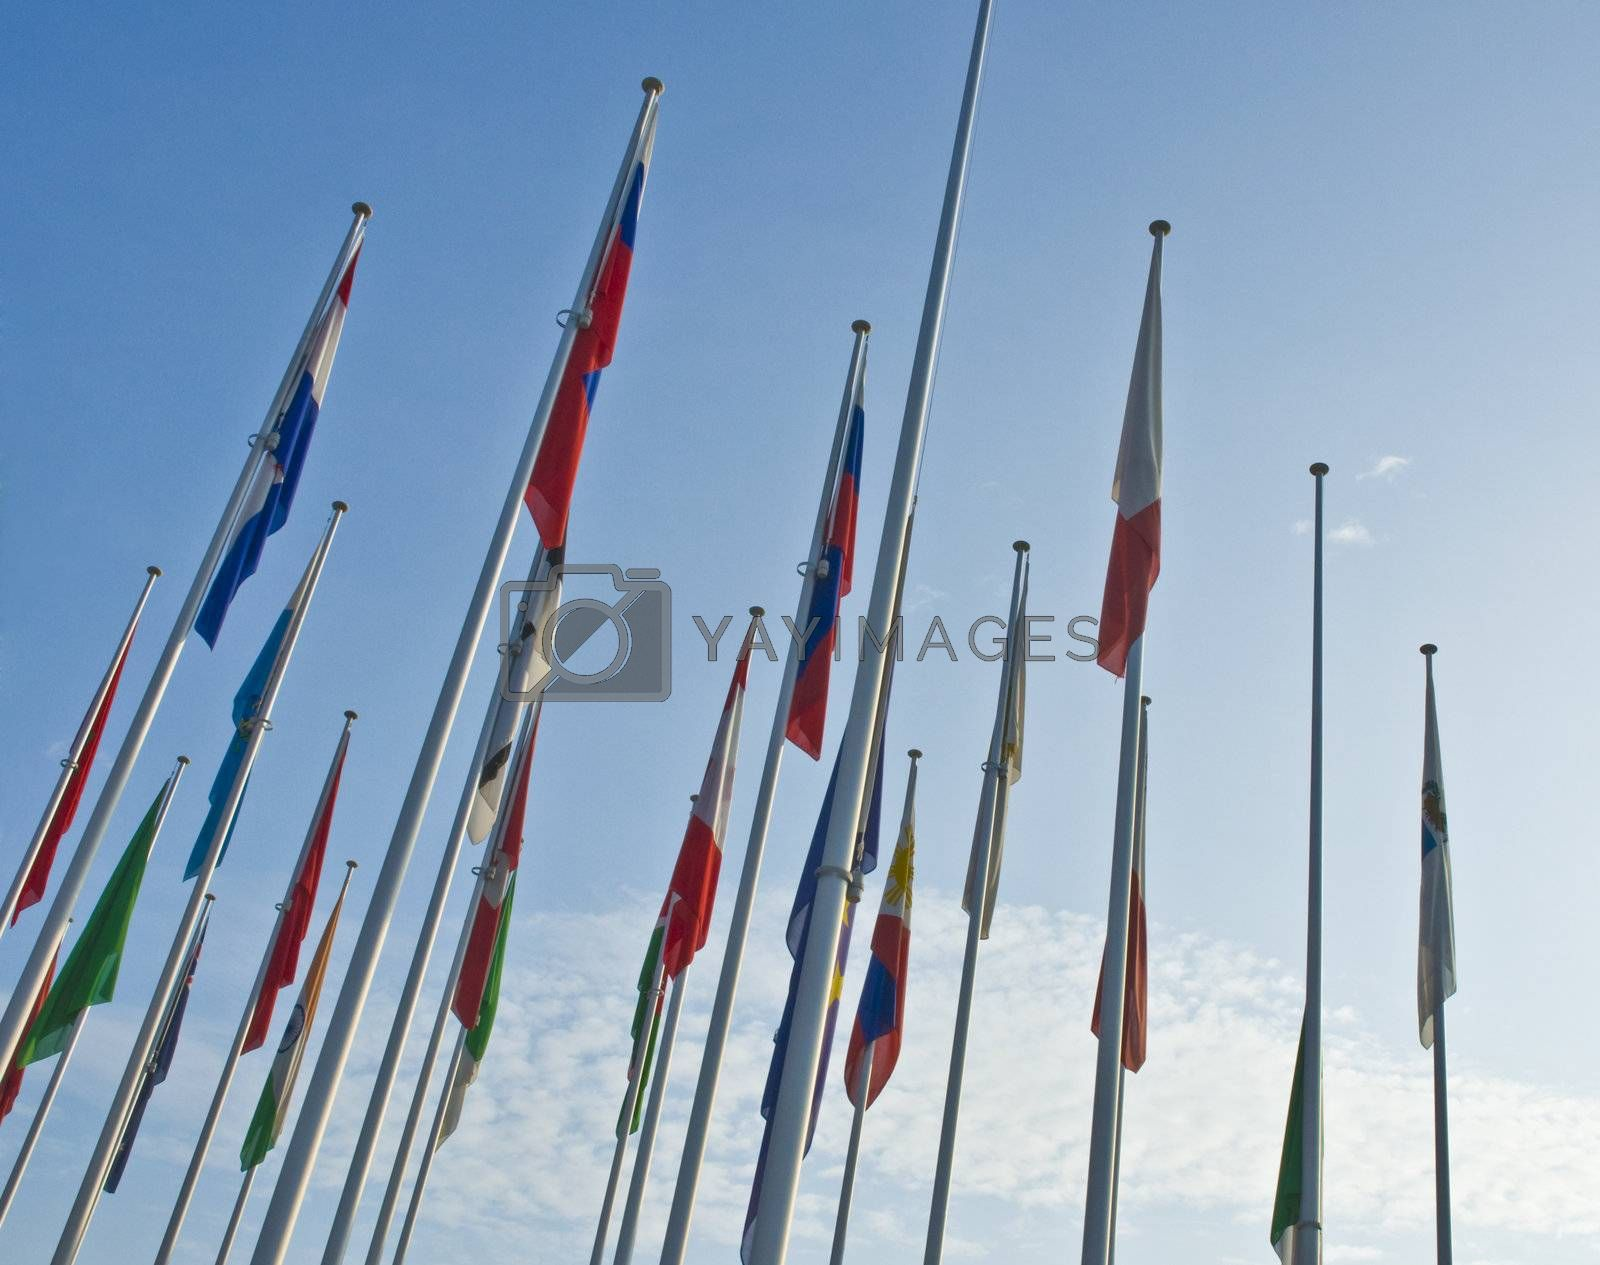 Royalty free image of Flags by carla720